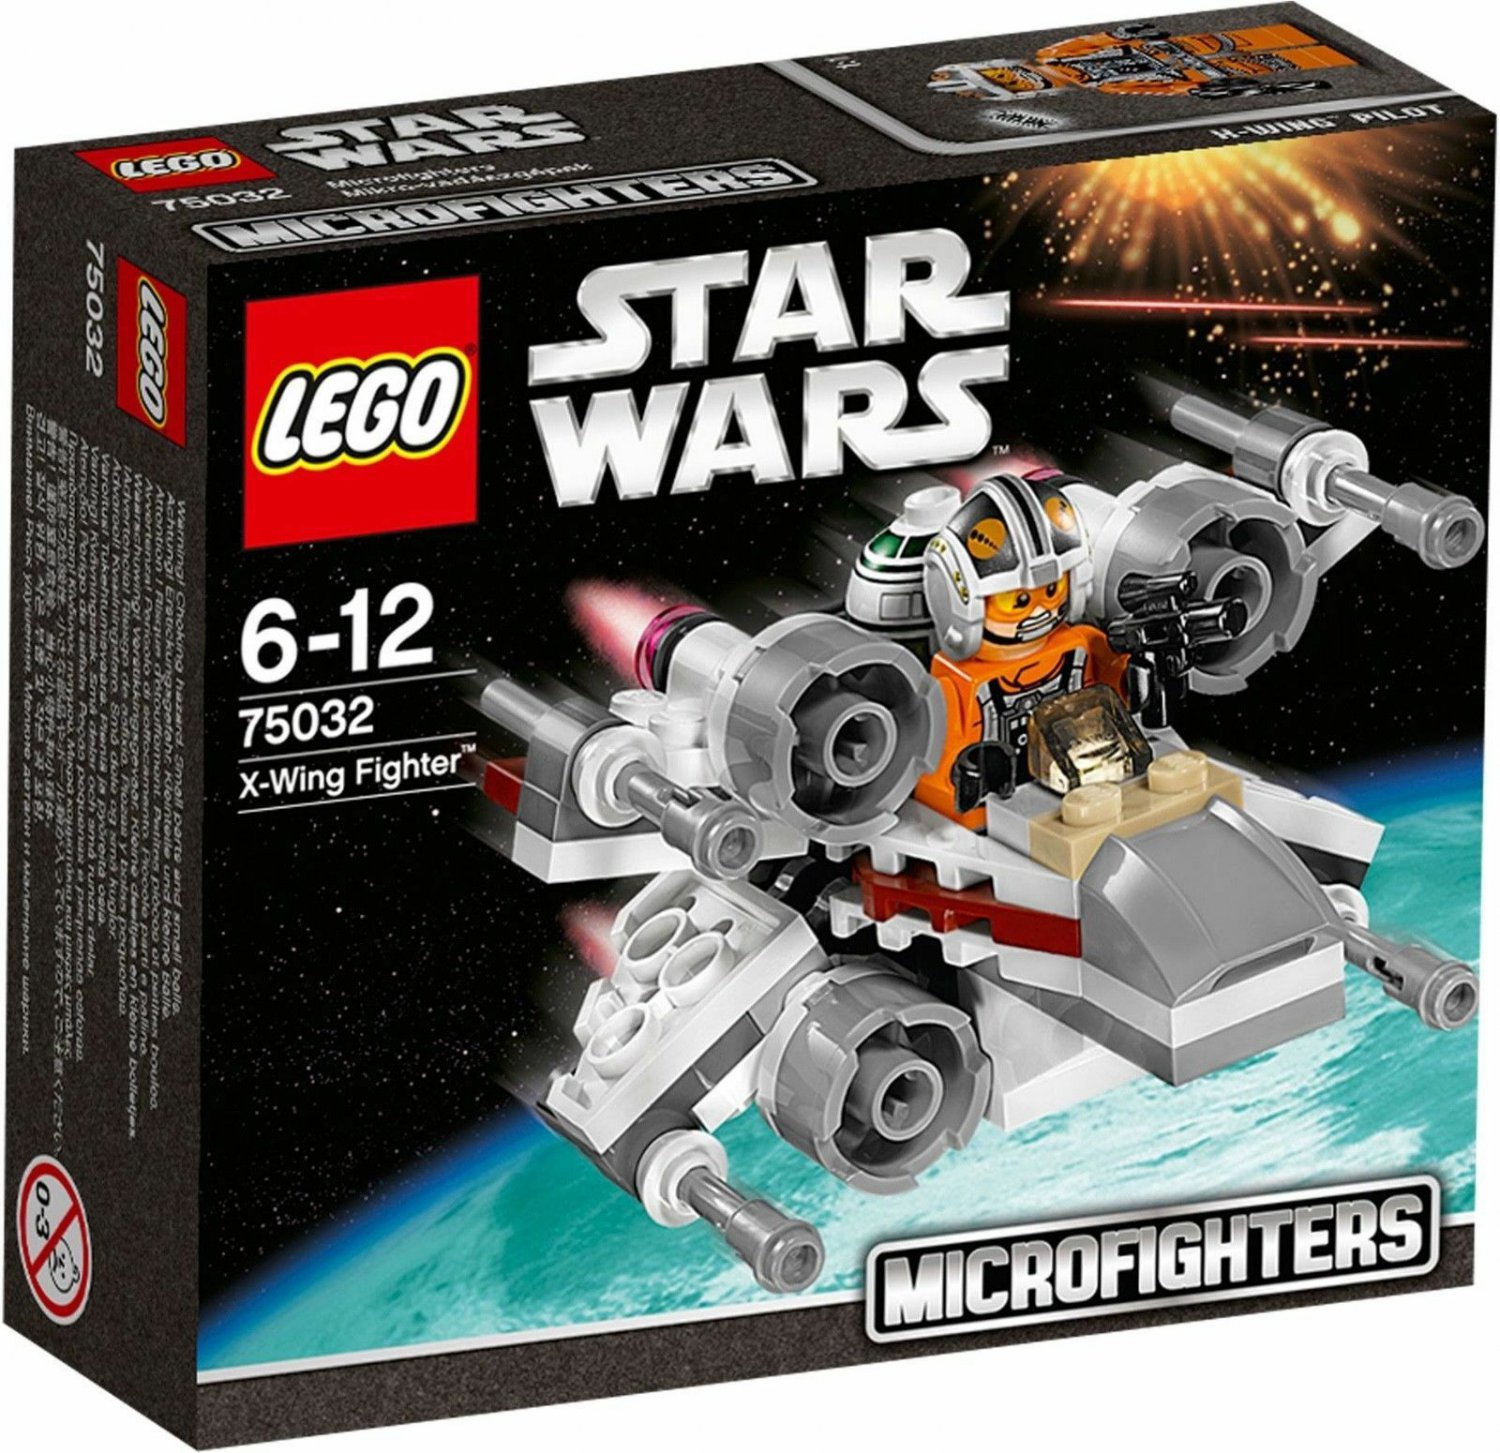 75032 Lego Star Wars X-Wing Fighter Microfighters